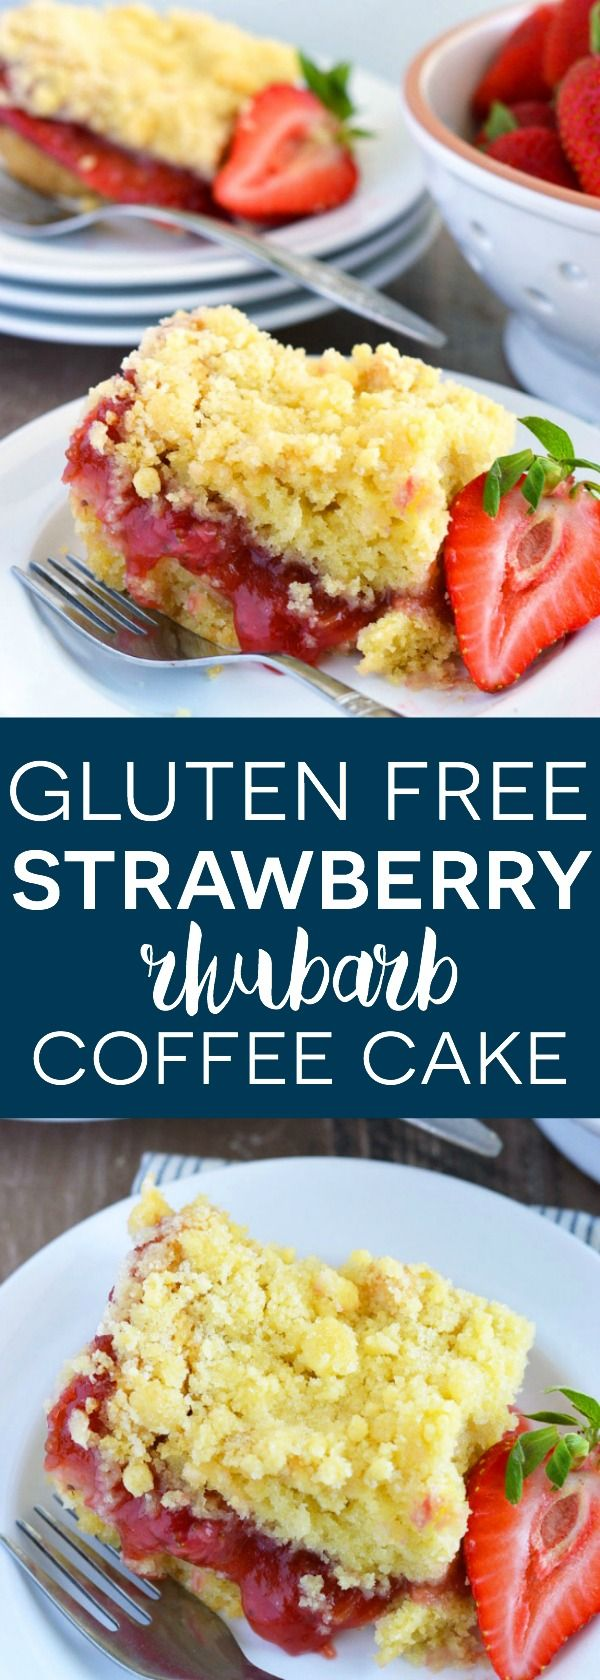 Gluten Free and Dairy Free Strawberry Rhubarb Coffee Cake from What The Fork Food Blog | whattheforkfoodblog.com